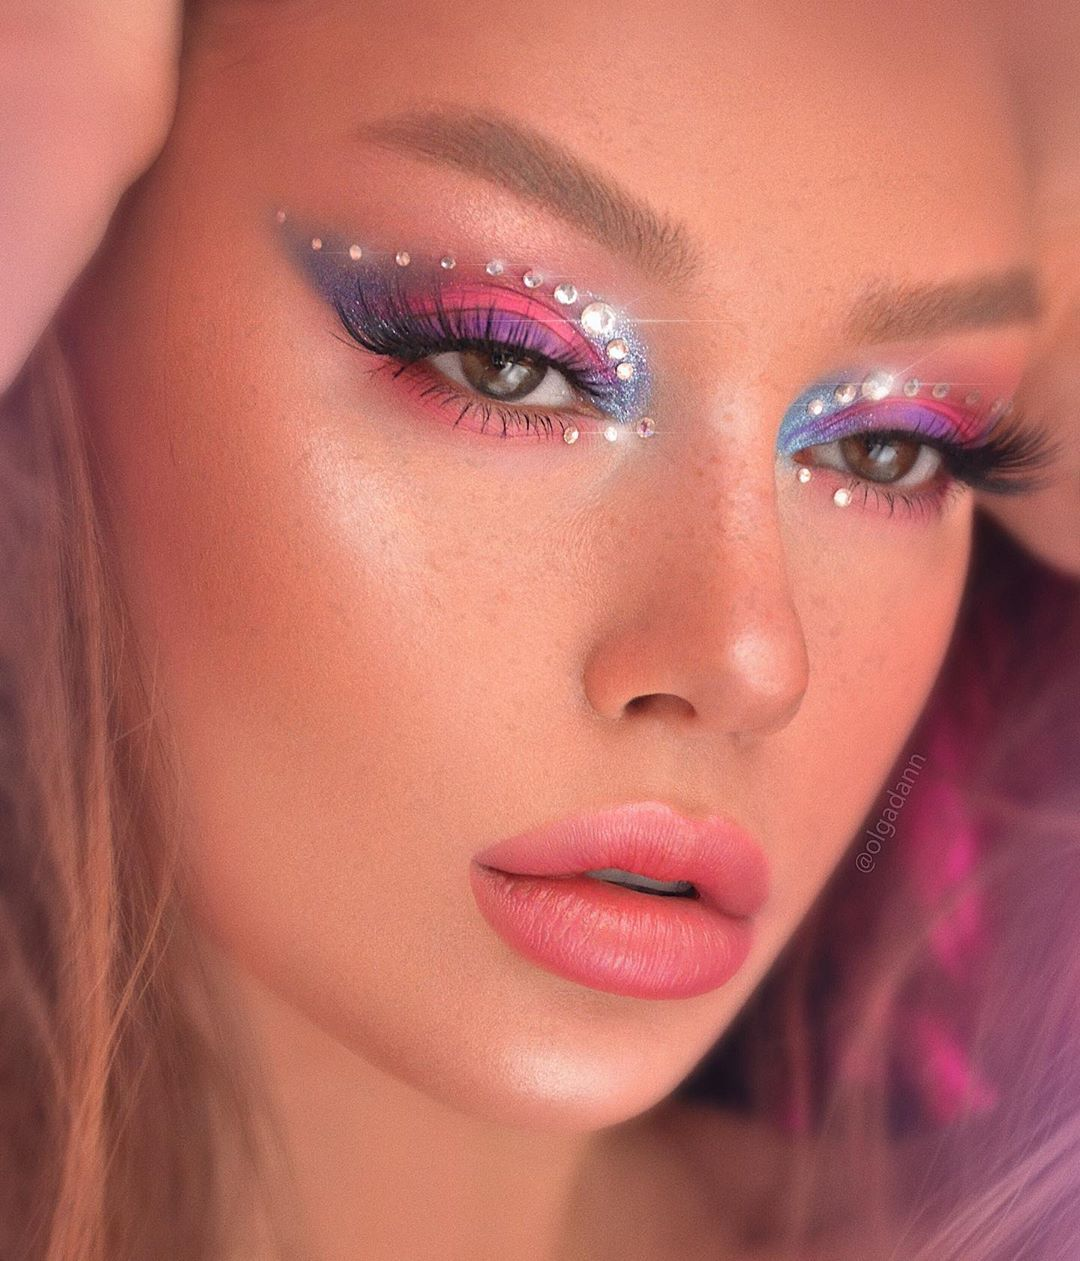 Beauty Makeup Photo Retouch On Instagram It S All About Me Mecosmetics Used Moodeditingcosmetics Moode Rave Makeup Makeup Looks Rhinestone Makeup